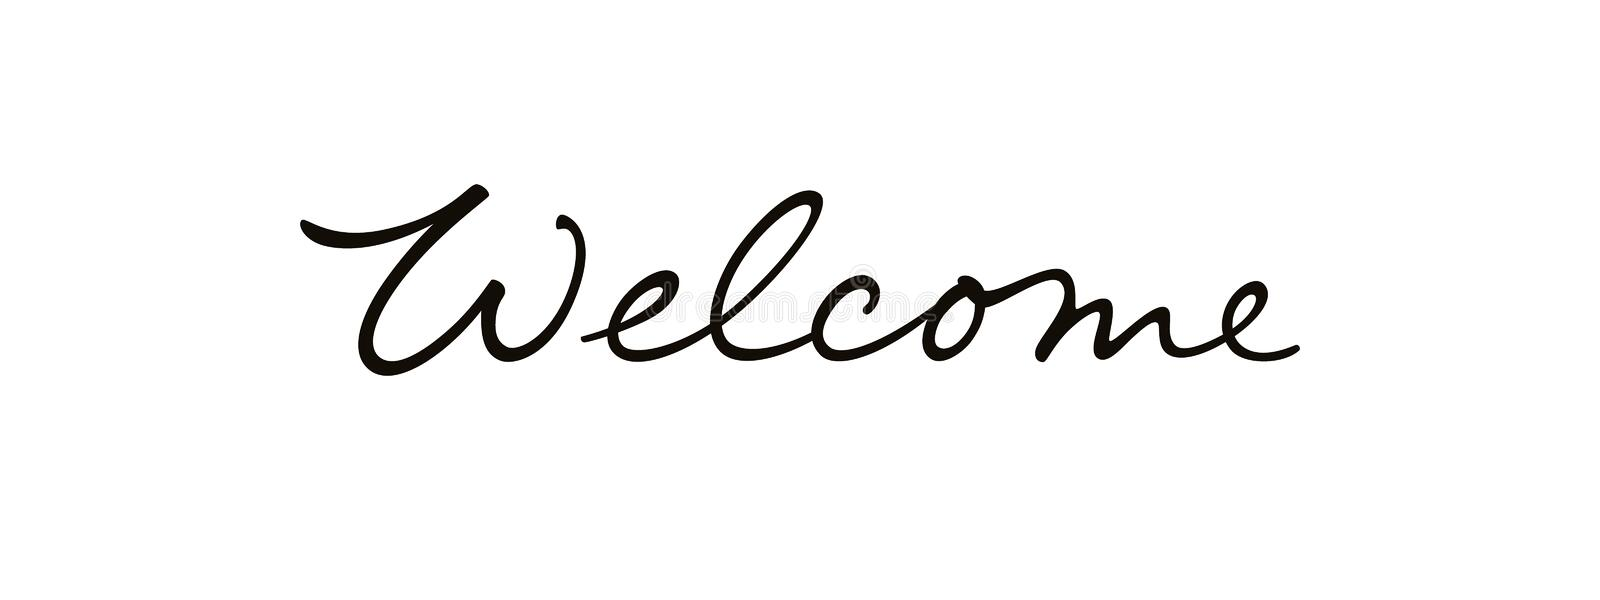 Welcome vector text logo stock vector. Illustration of